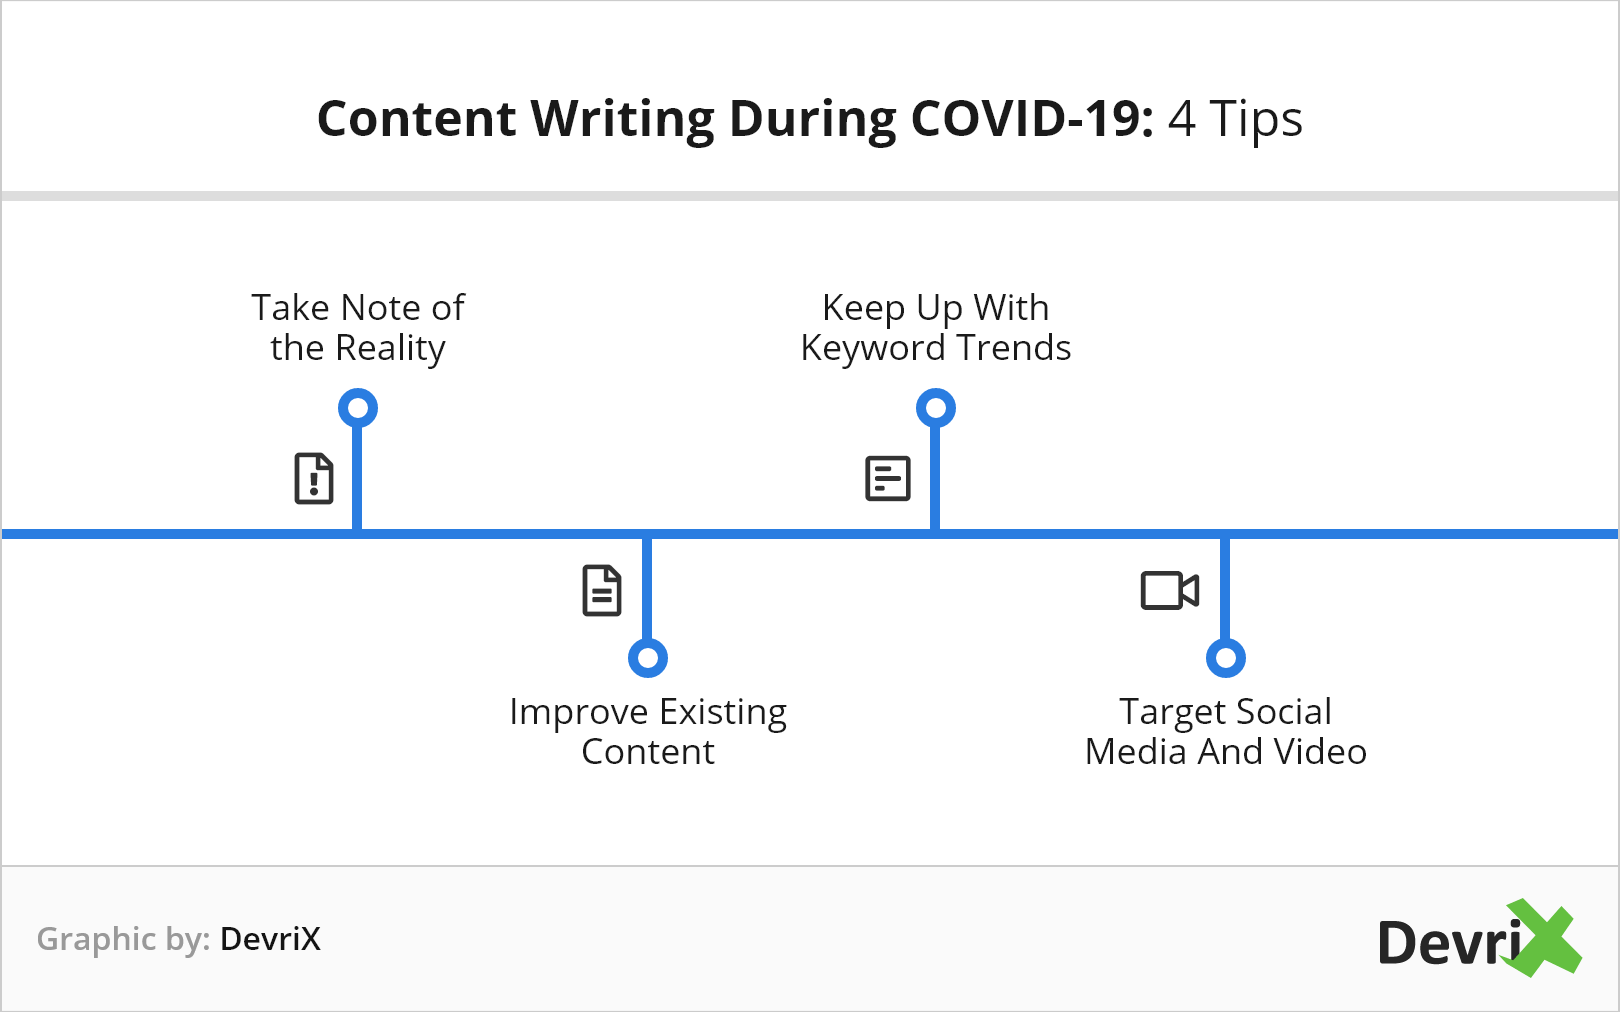 content writing during covid-19